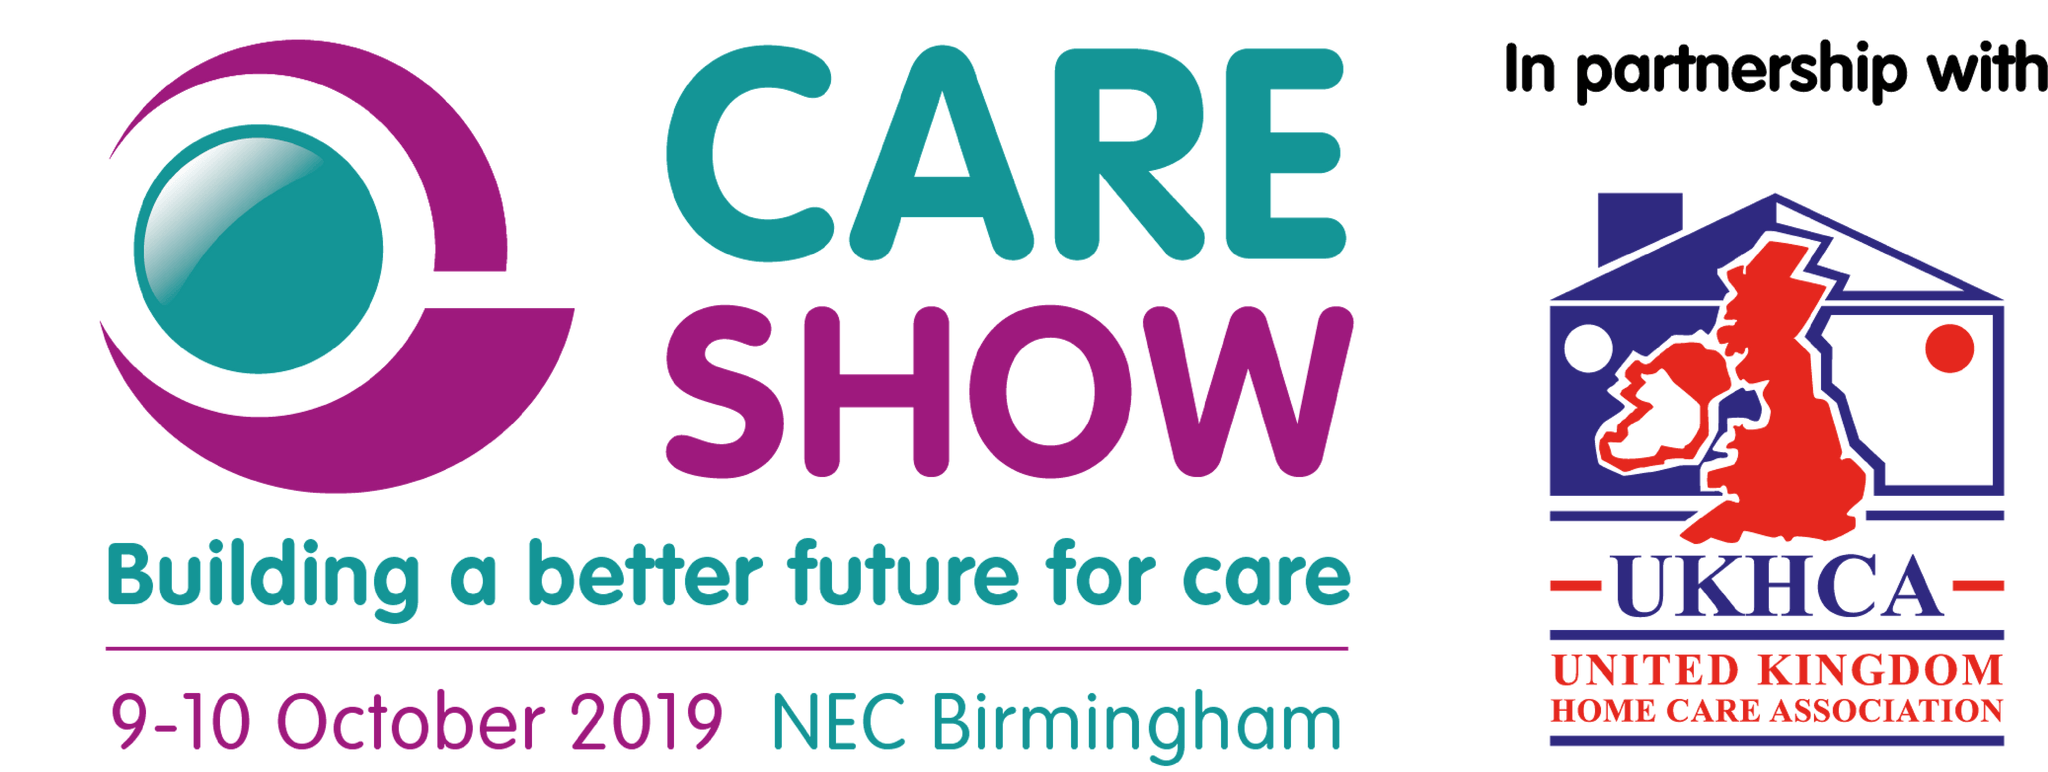 C2P19314---Care-Show---Joint-UKHCA-logo-190402